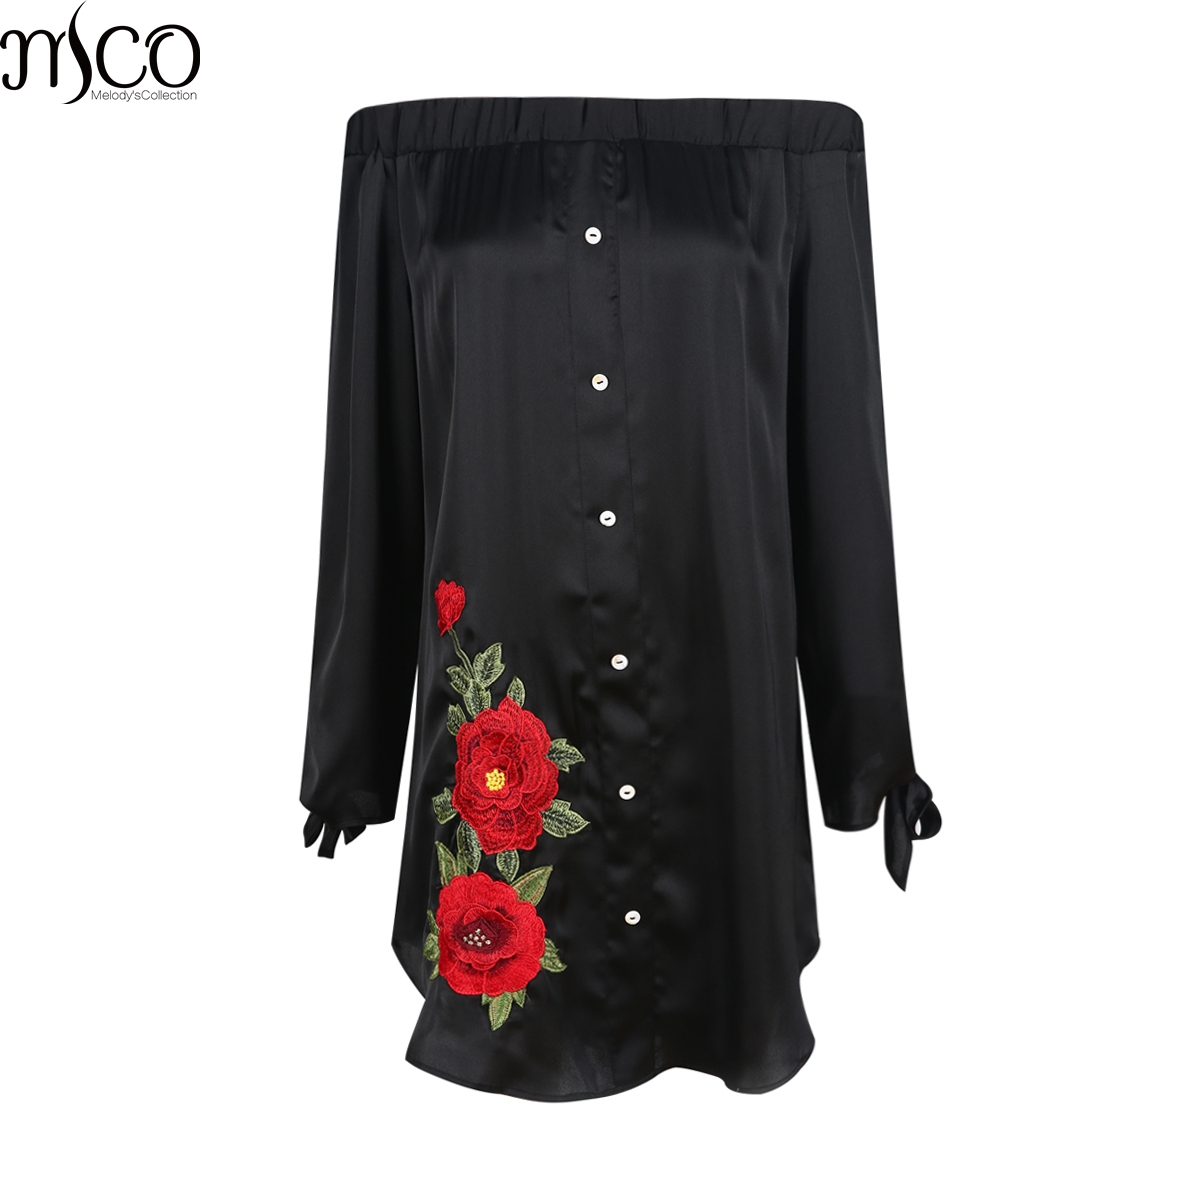 MCO <font><b>Sexy</b></font> Off Shoulder Floral Emboridery Plus Size Shirt Dress Oversized Mini Dresses Black Bardot Big Women Clothing <font><b>5xl</b></font> 6xl 7xl image